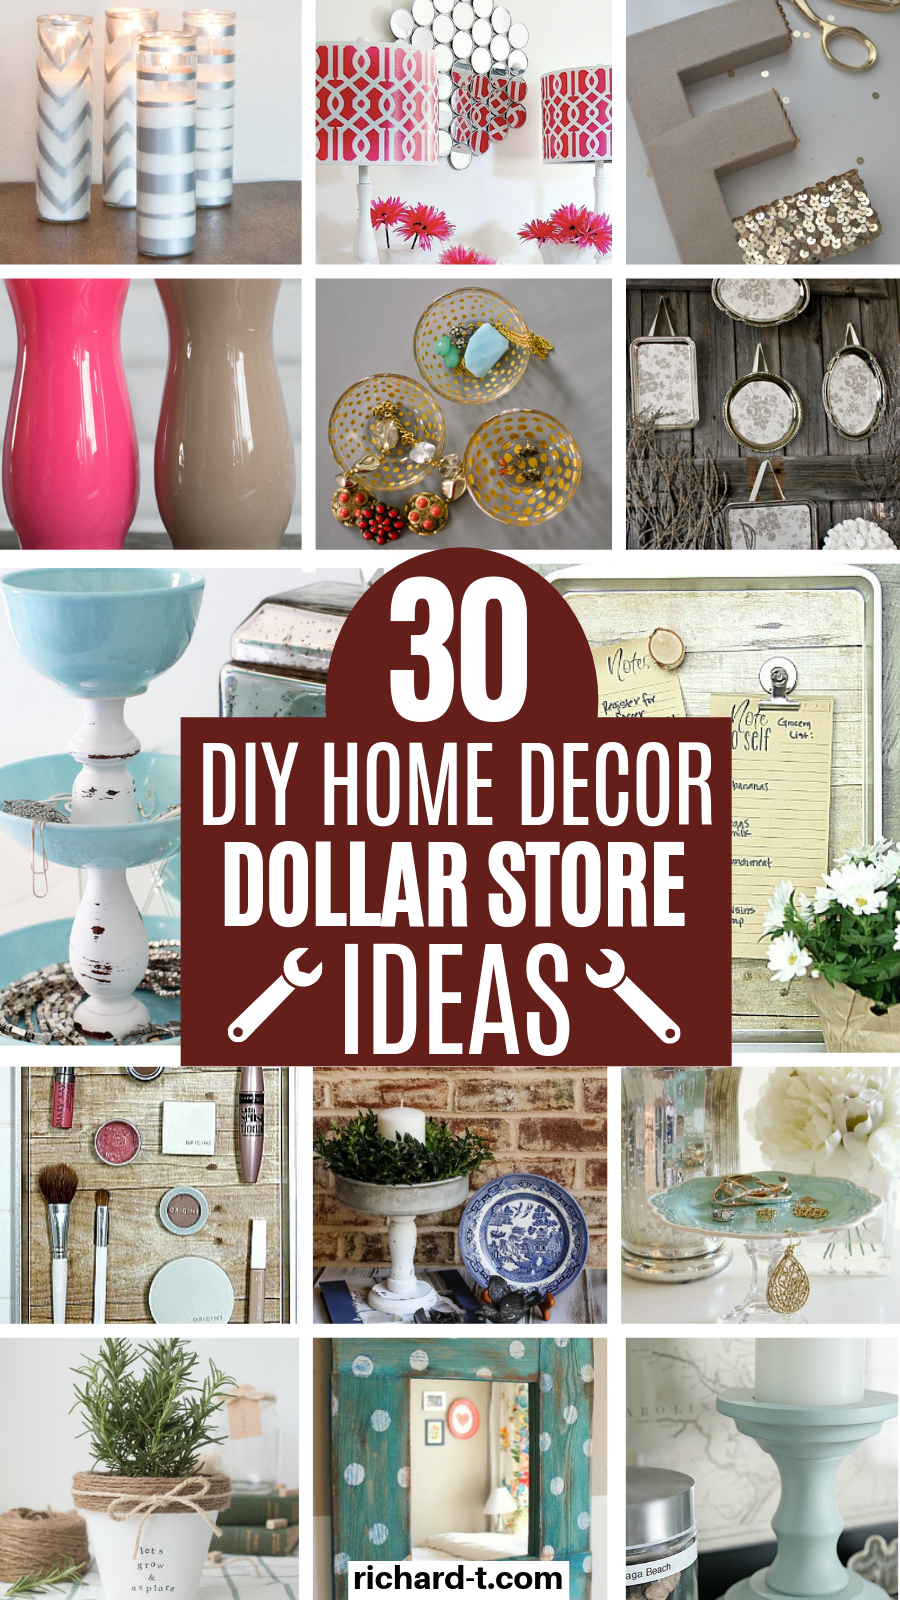 30 DIY Home Decor Dollar Store Ideas You Wish You Knew